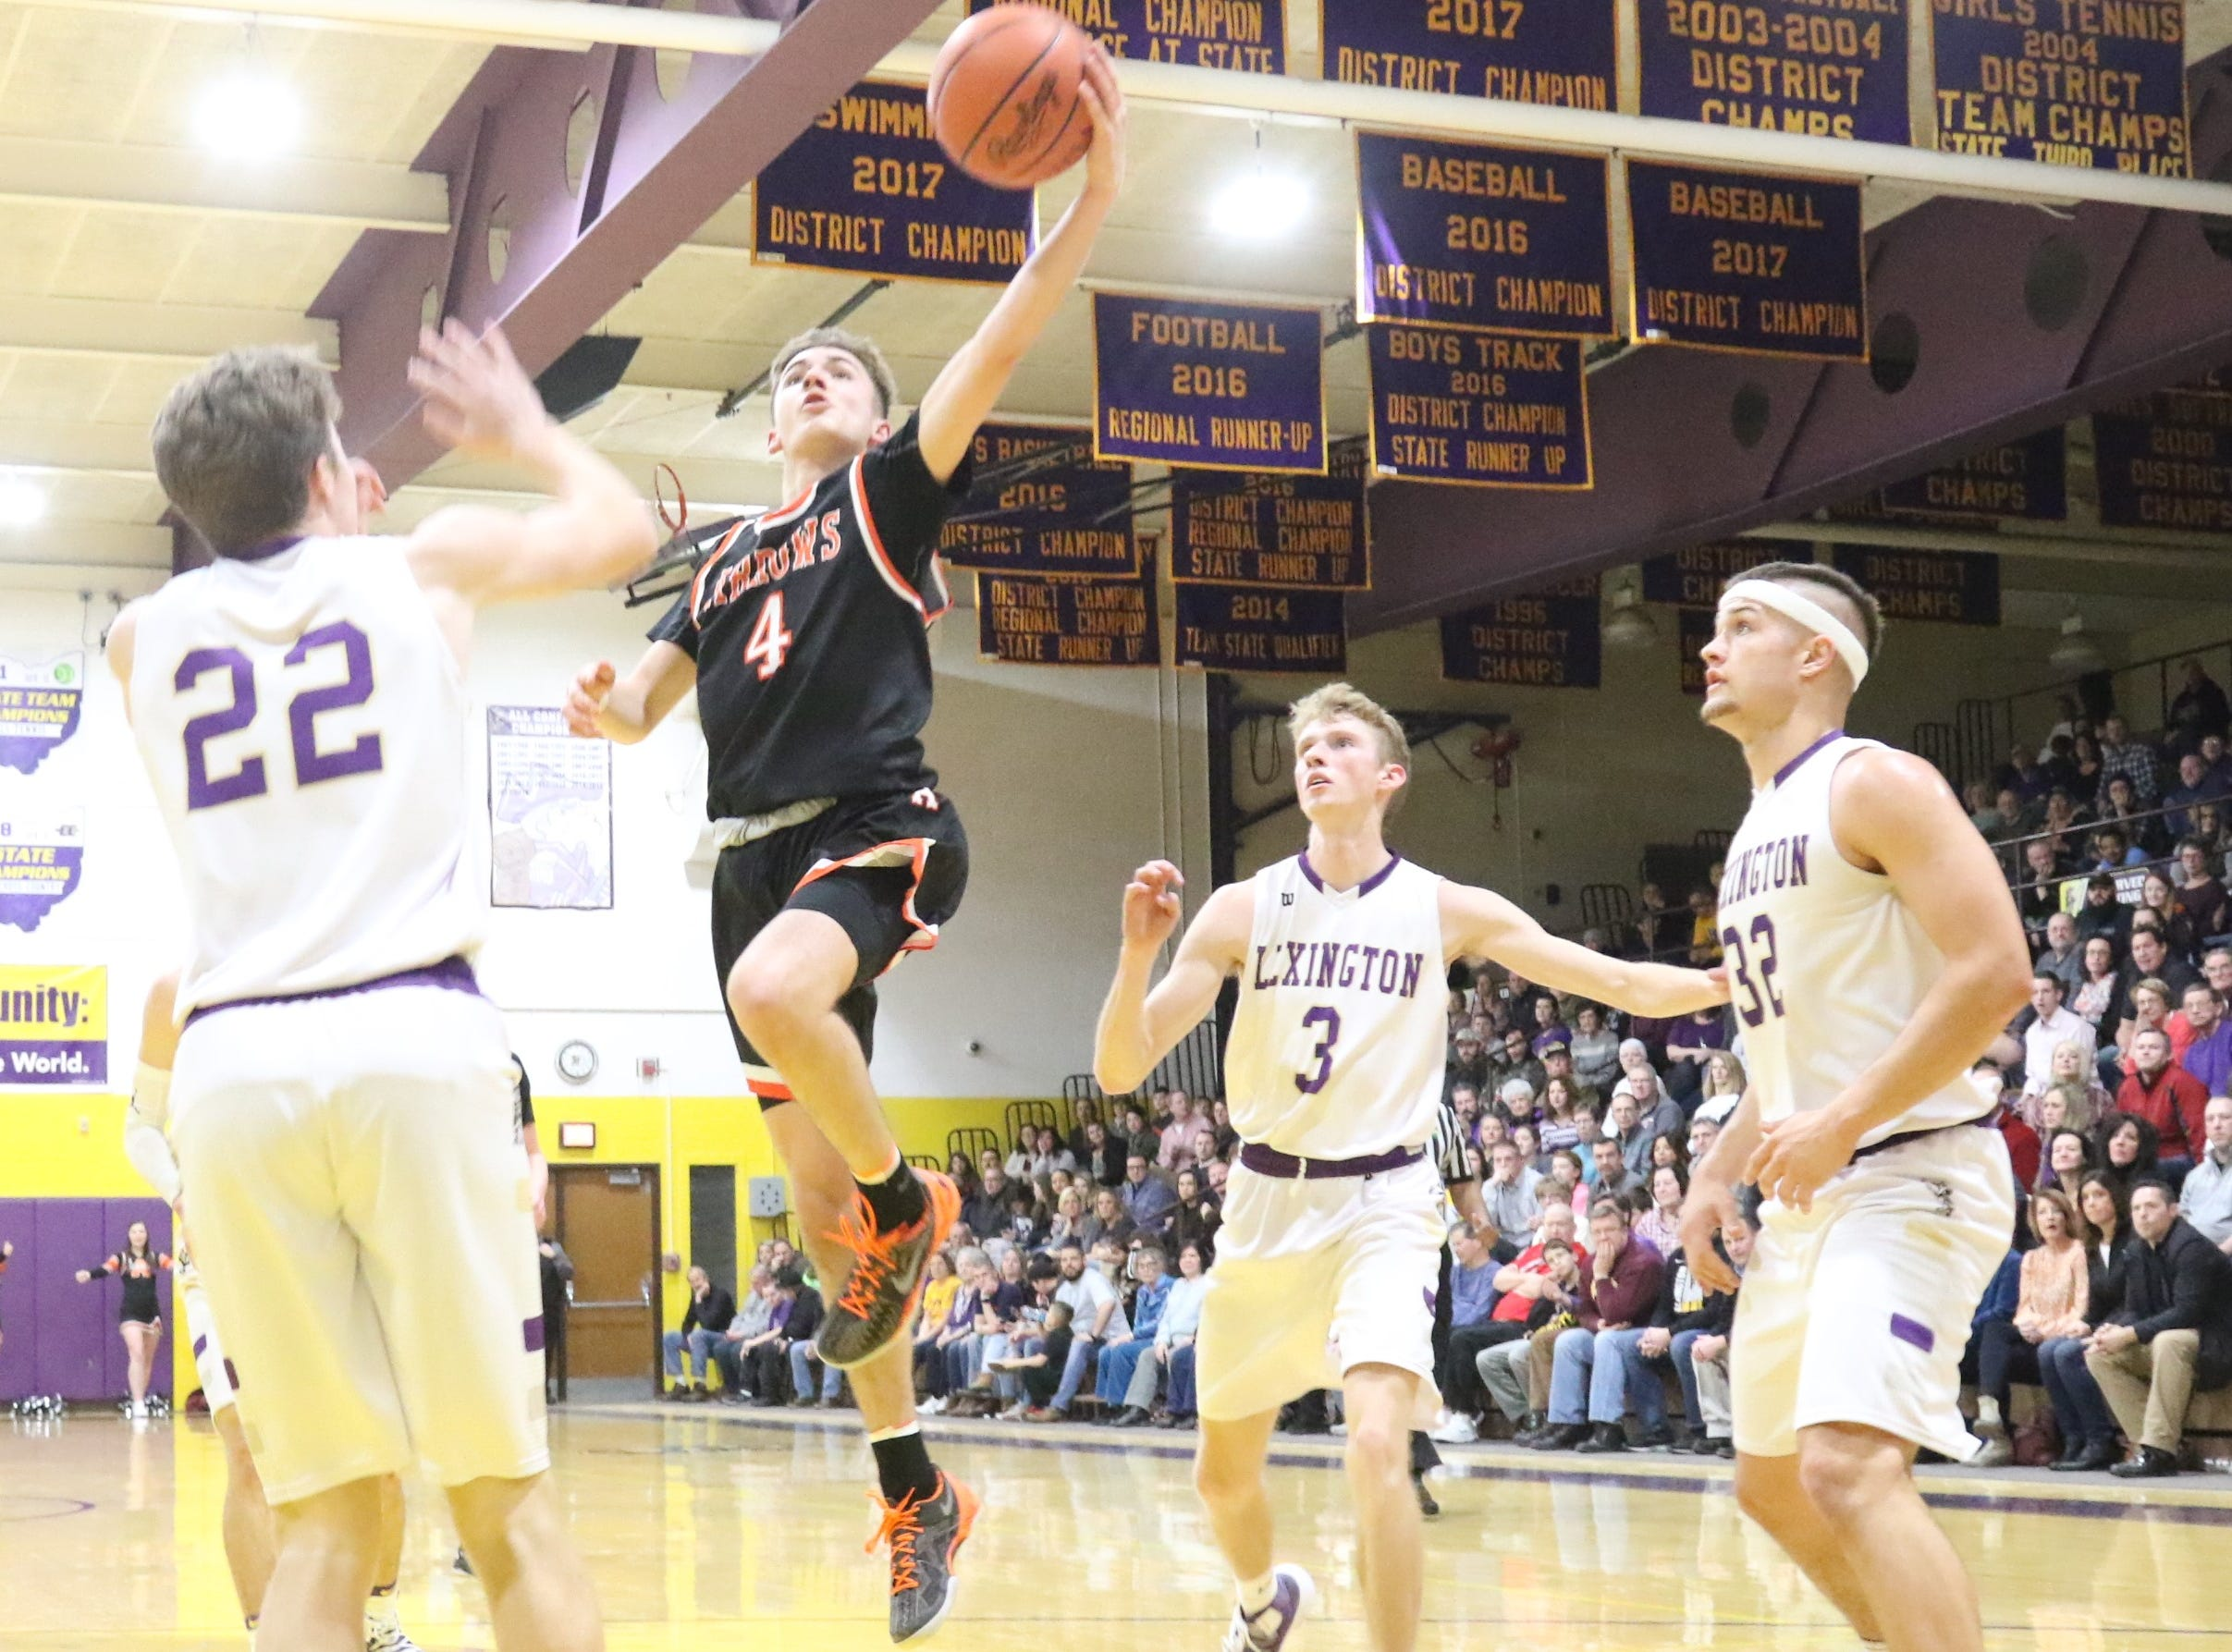 Ashland's Luke Denbow scores on a left-handed layup during the Arrows' loss to Lexington on Friday night.